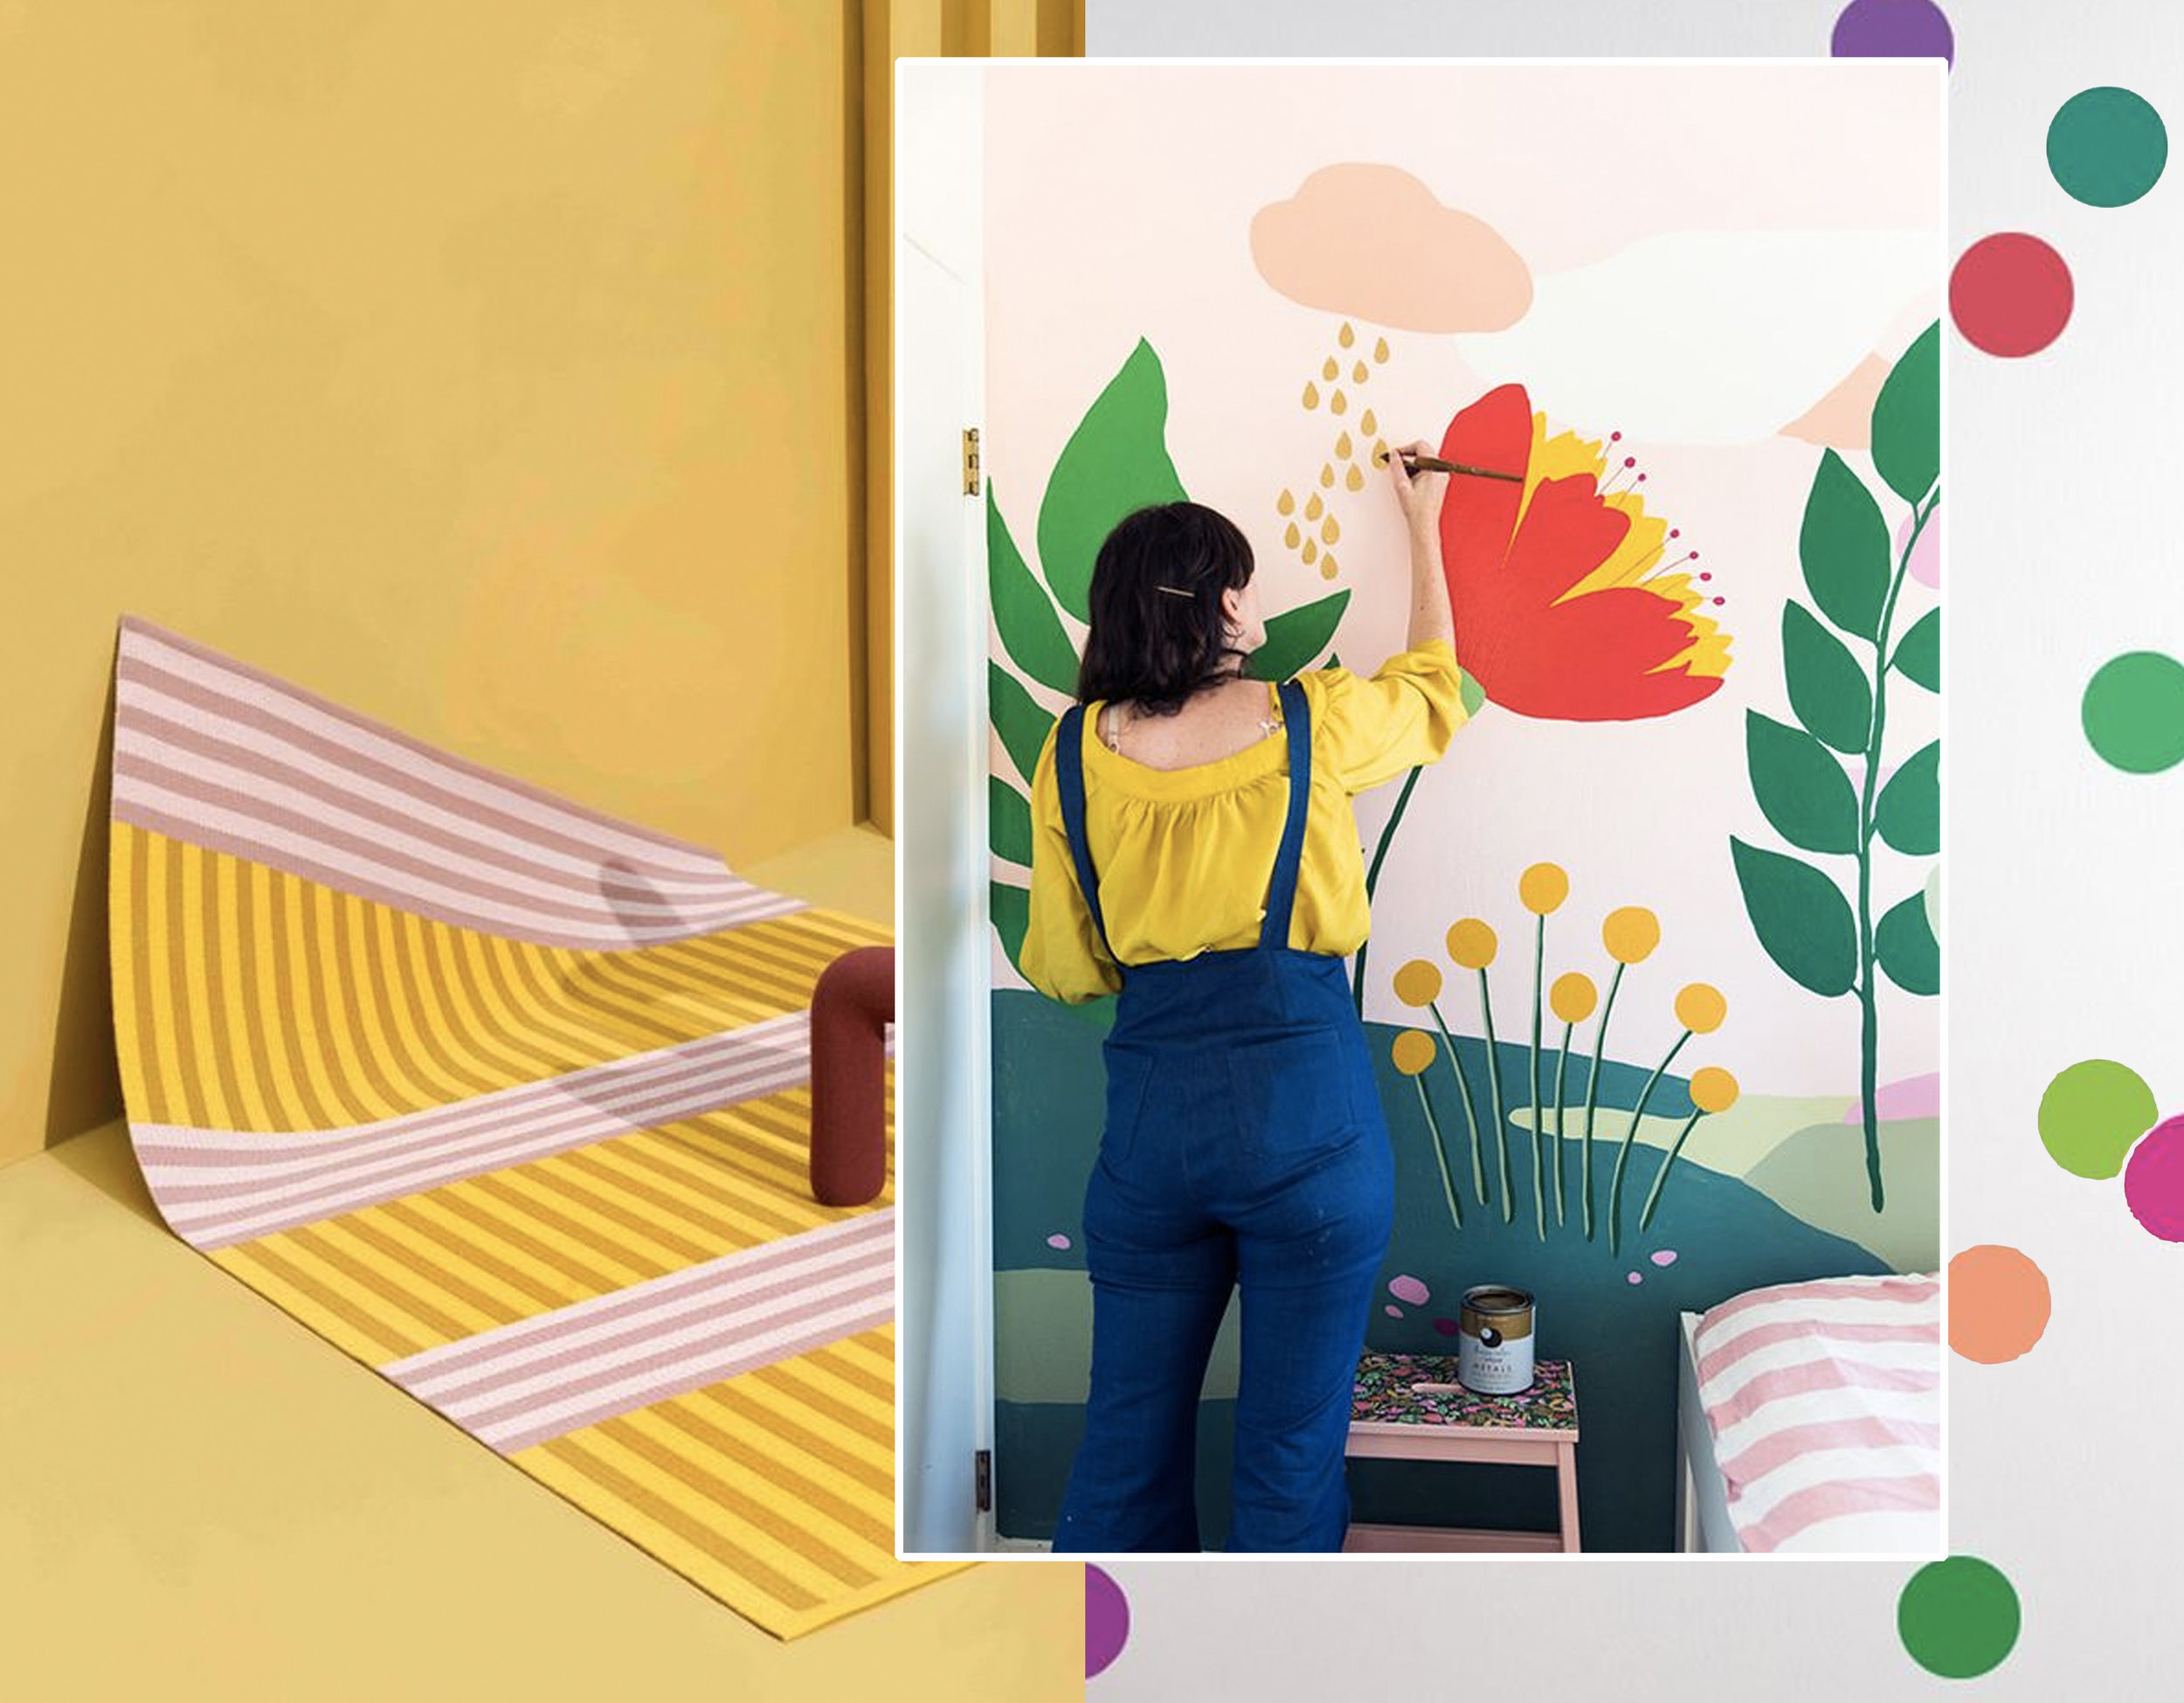 Striped rug of Kasthall via  Designboom  - painting your own mural via  The Budget Decorator  - Polka Dots  Walls Dressed Up